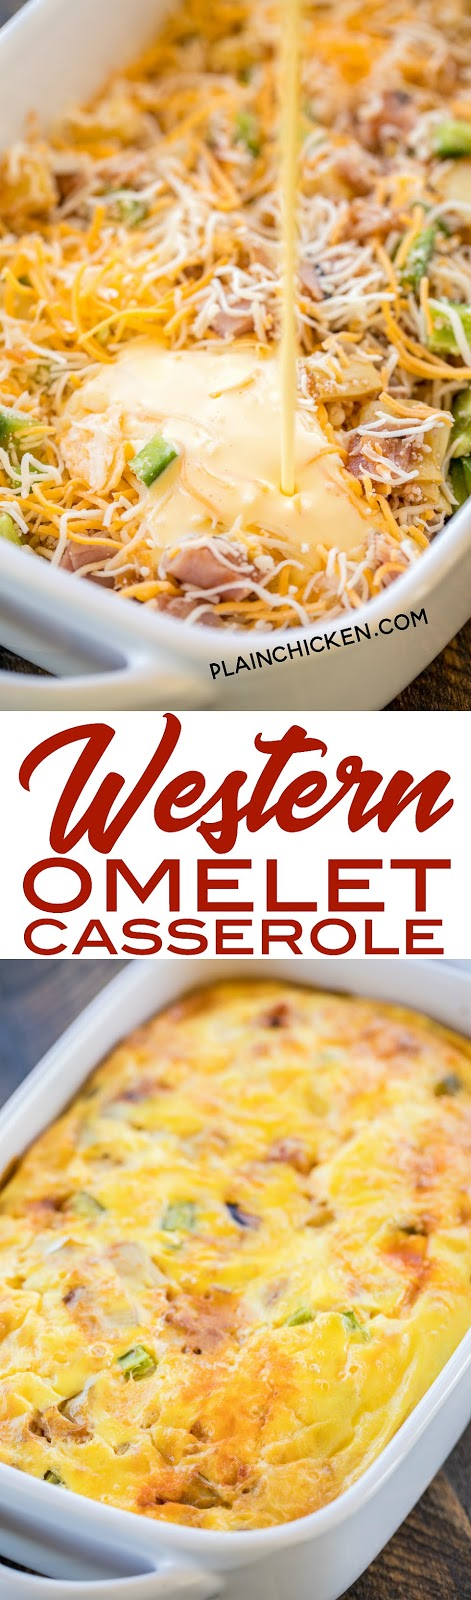 Western Omelet Casserole - perfect for breakfast, lunch or dinner. Ham, onion, bell pepper, artichokes, salsa, eggs, sour cream and cheese. No crust, so it is a great low-carb option. Only 4.5 Weight Watcher points per serving!! #casserole #omelet #breakfast